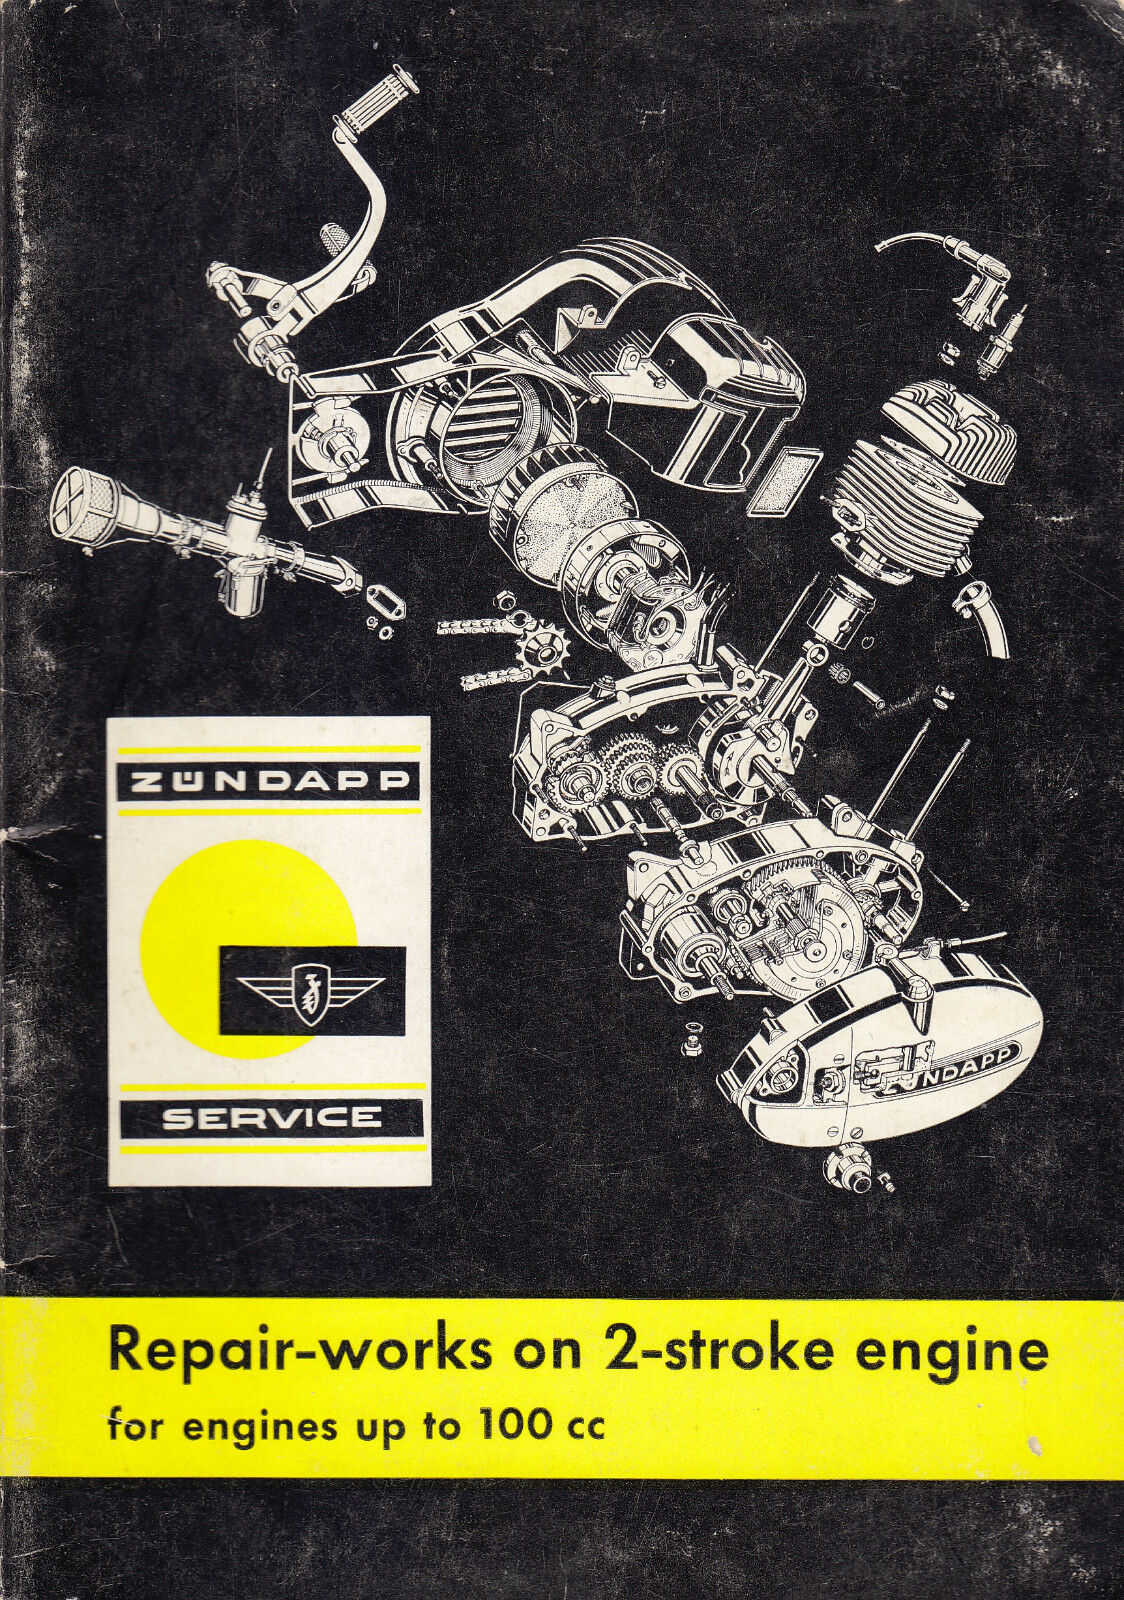 1966 ZUNDAPP REPAIR ON 2-STROKE ENGINES UP TO 100cc MOTORCYCLE SERVICE  MANUAL 1 of 7Only 1 available ...